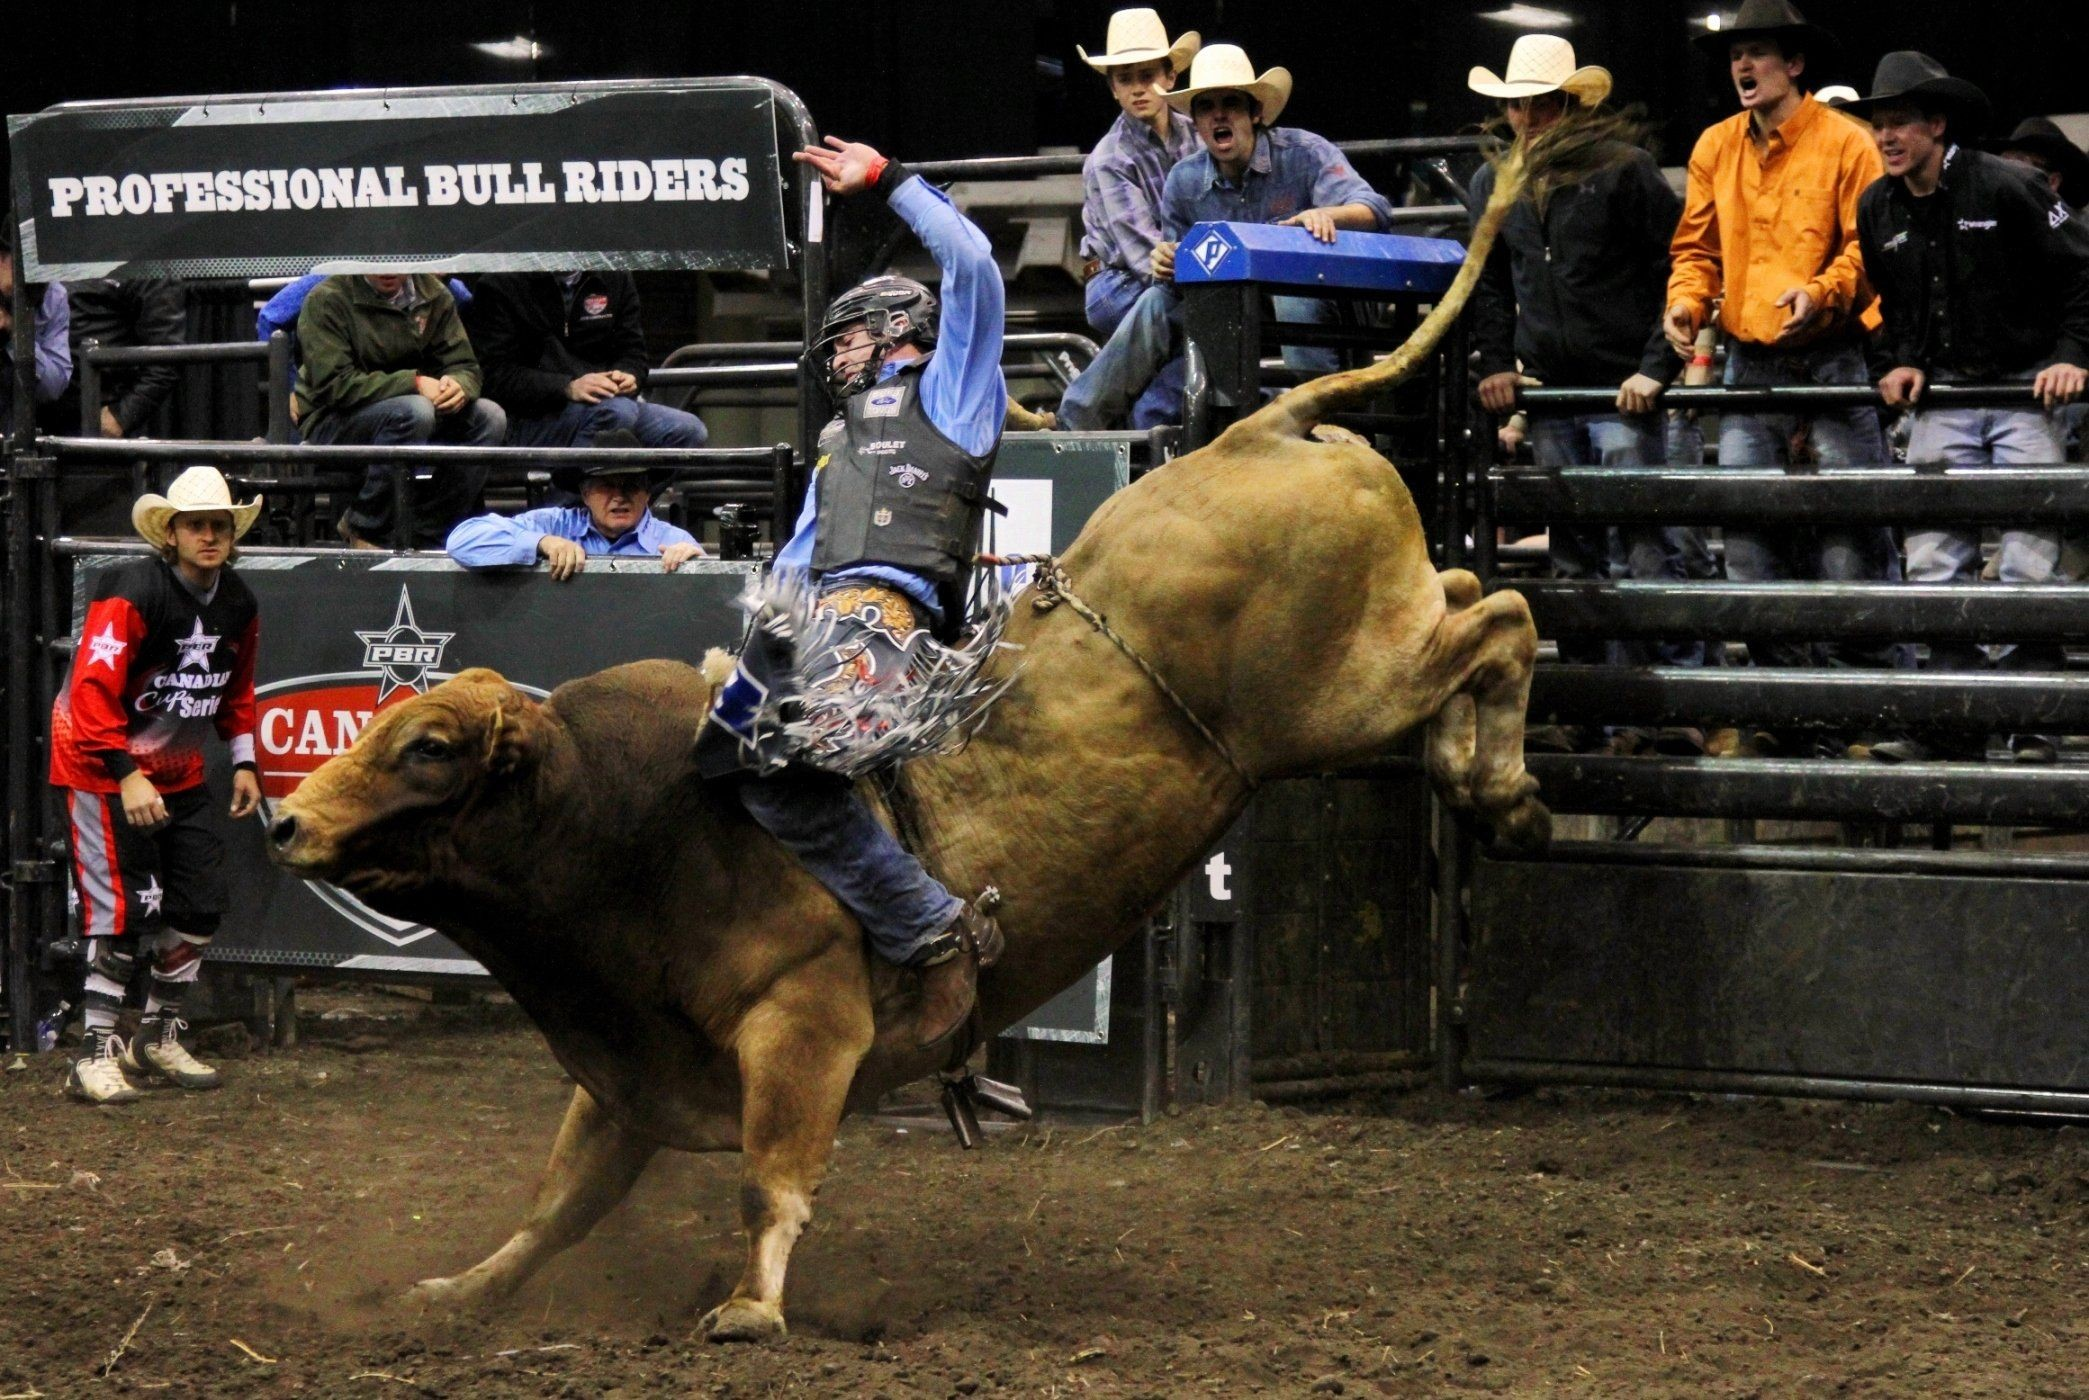 Res: 2089x1400, Rodeo Wallpapers 10 - 2089 X 1400